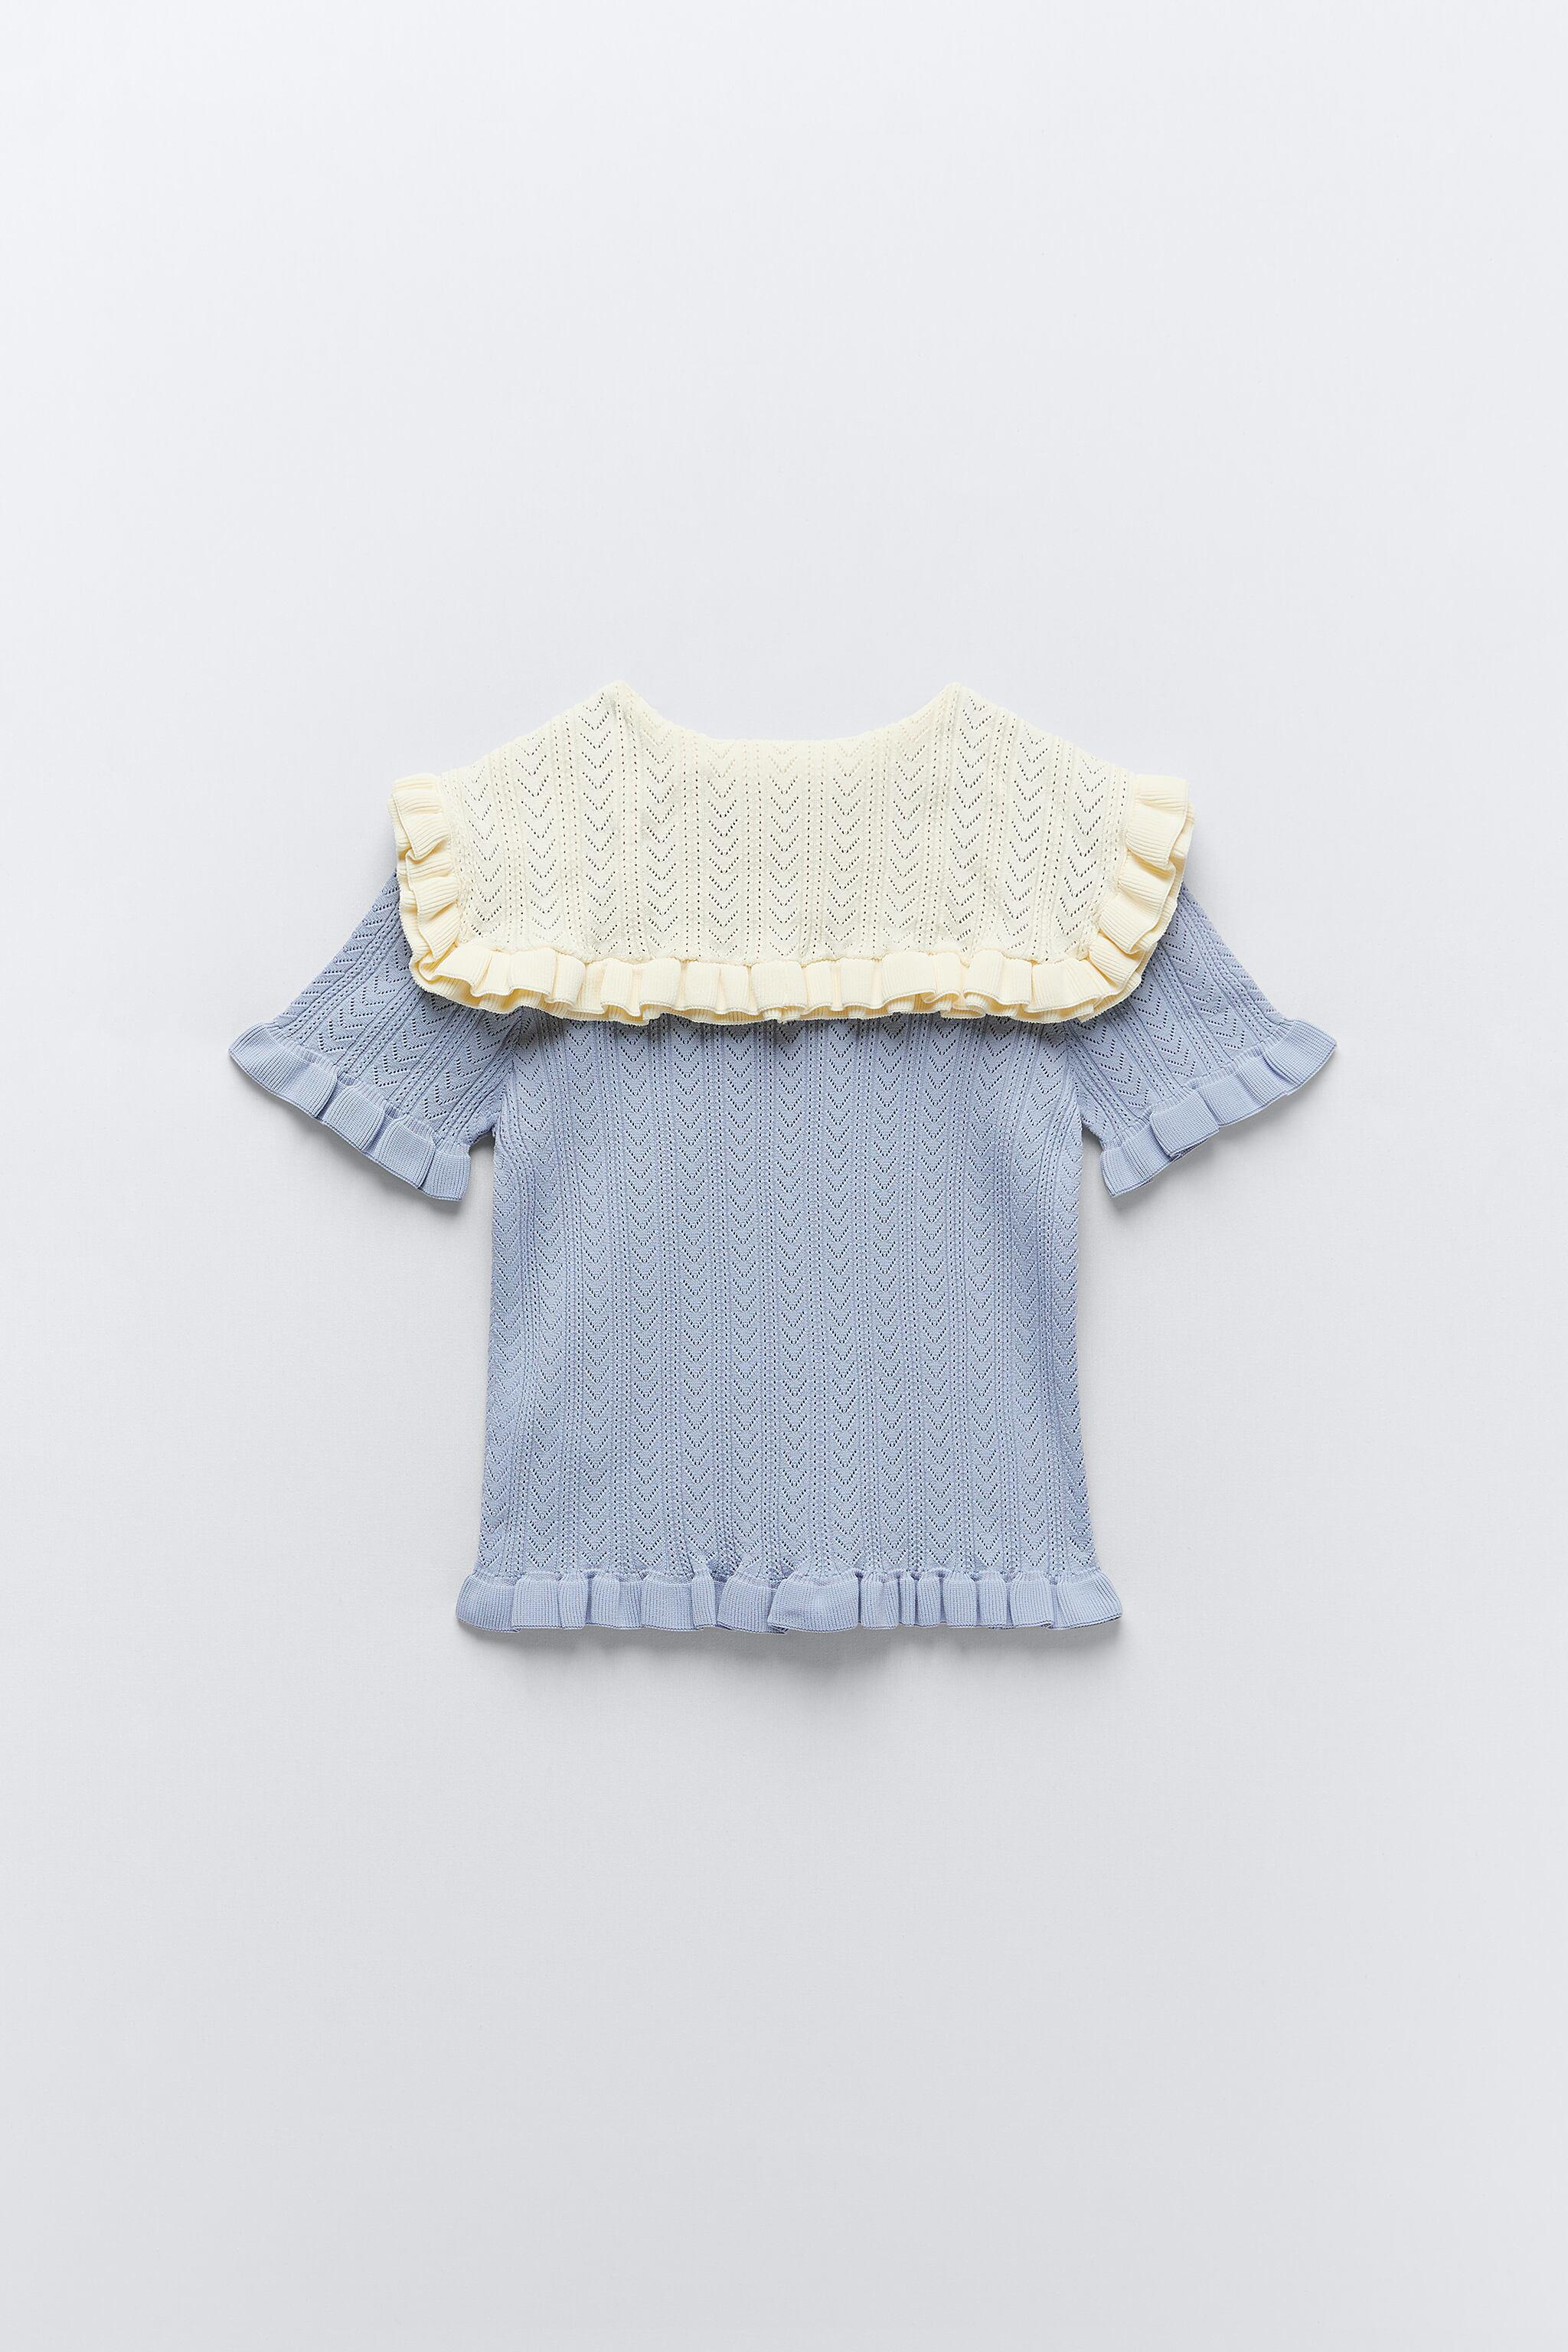 COMBINATION KNIT TOP 7